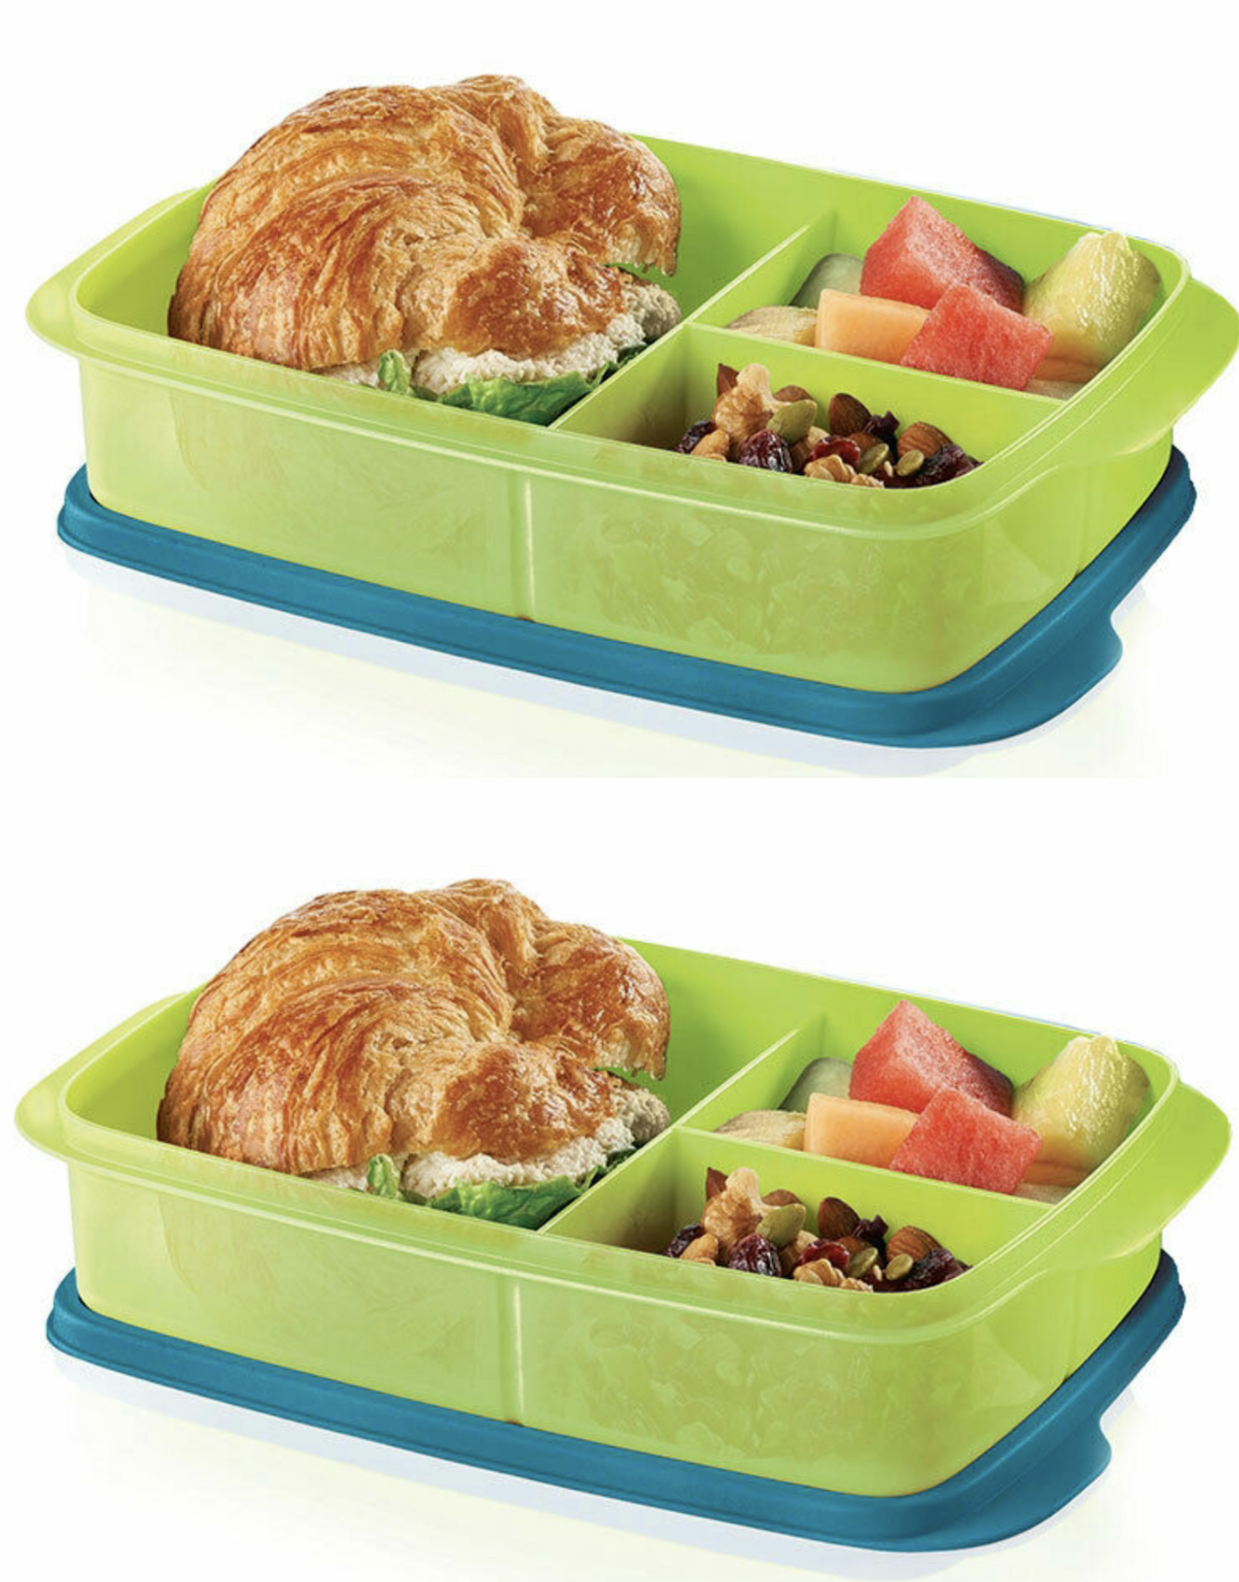 Two Brand New Tupperware Large Divided Lunch It Containers Green & Blue New 3